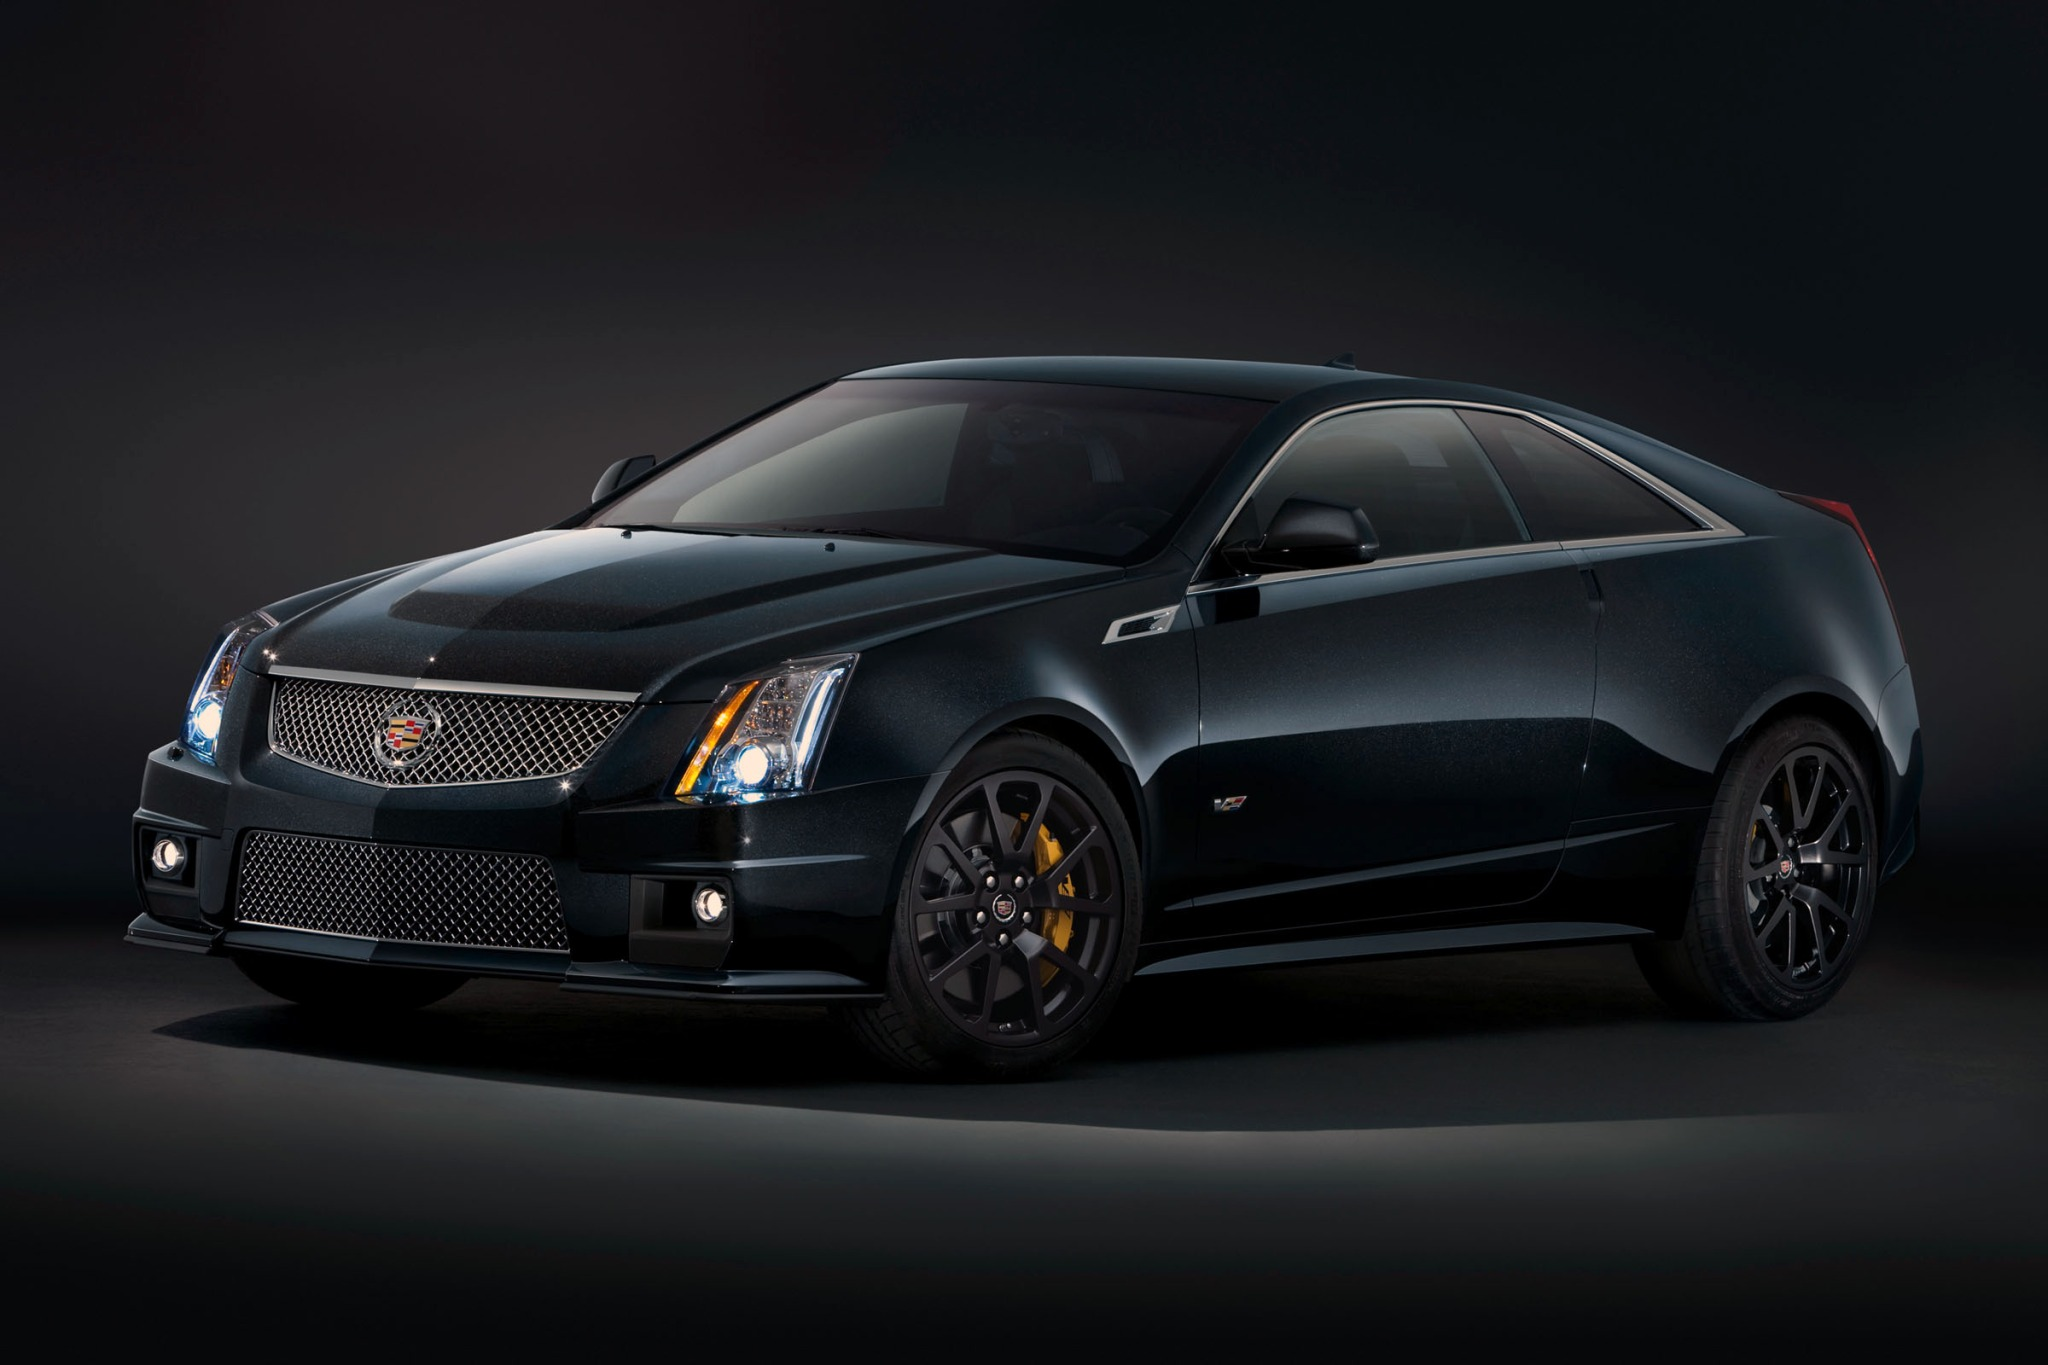 2012 Cadillac CTS-V Coupe exterior #2